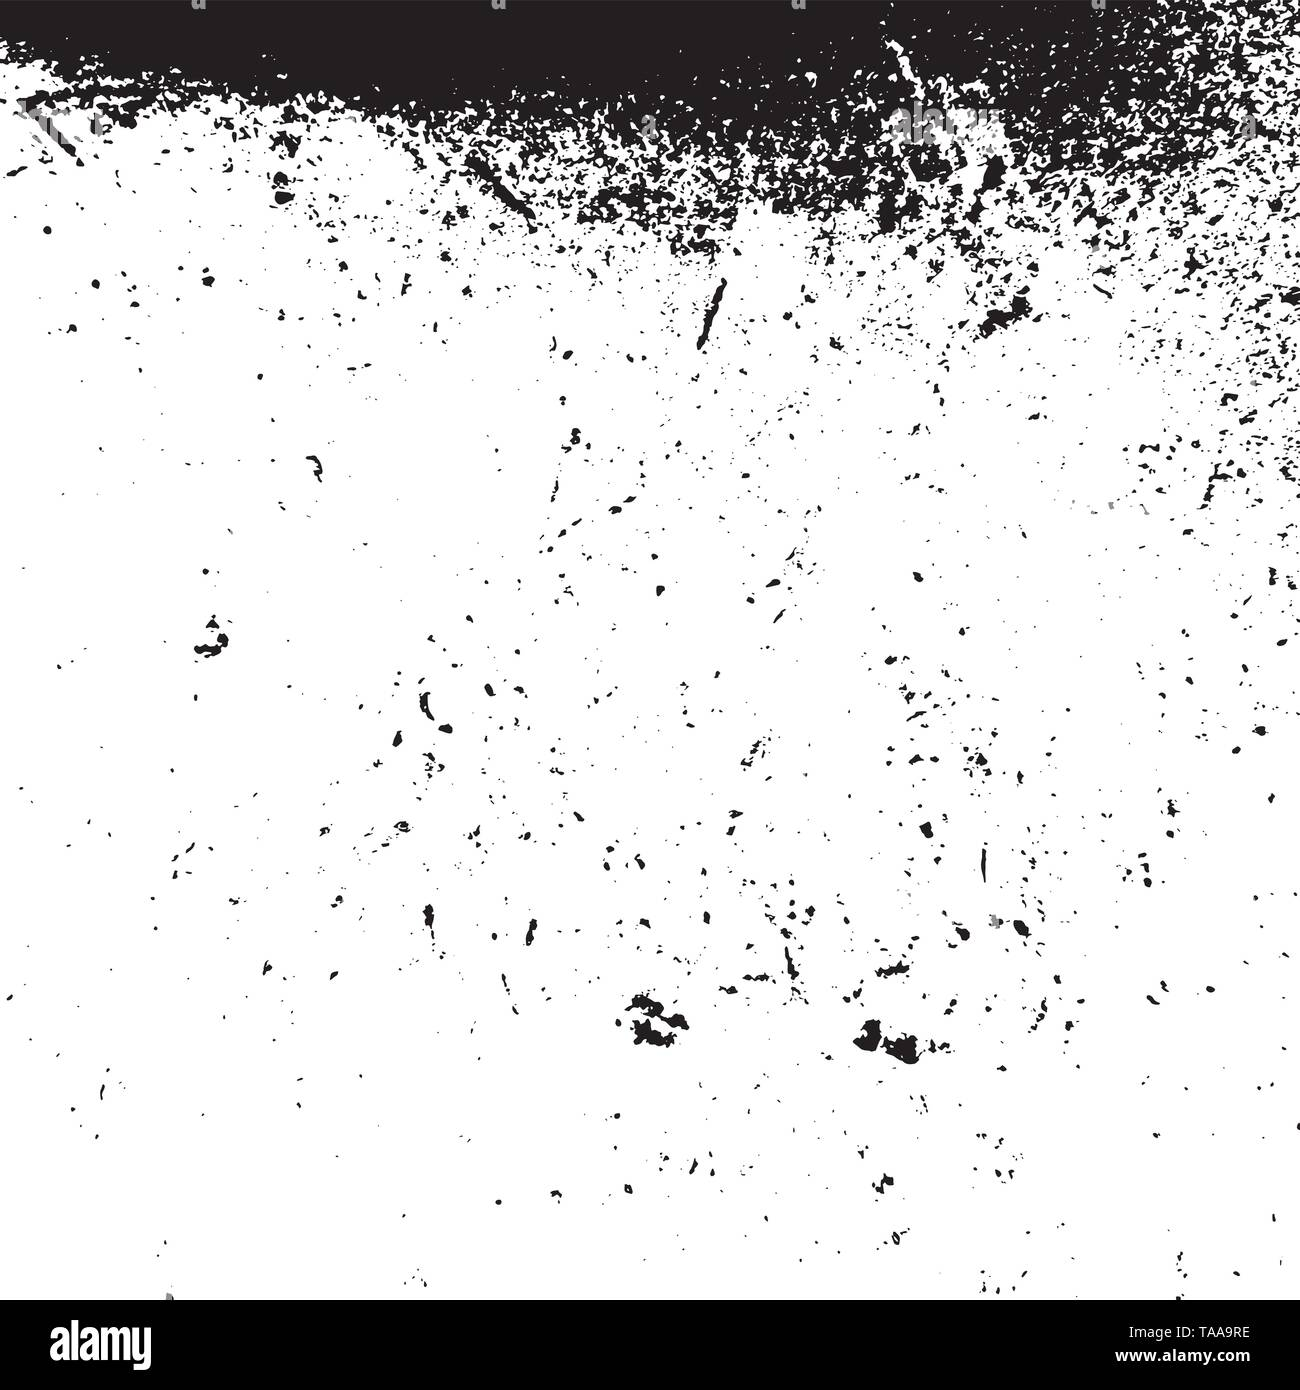 Distressed spray grainy overlay texture. Grunge dust messy background. Dirty powder rough empty cover template. Aged splatter crumb wall backdrop. Wea - Stock Image